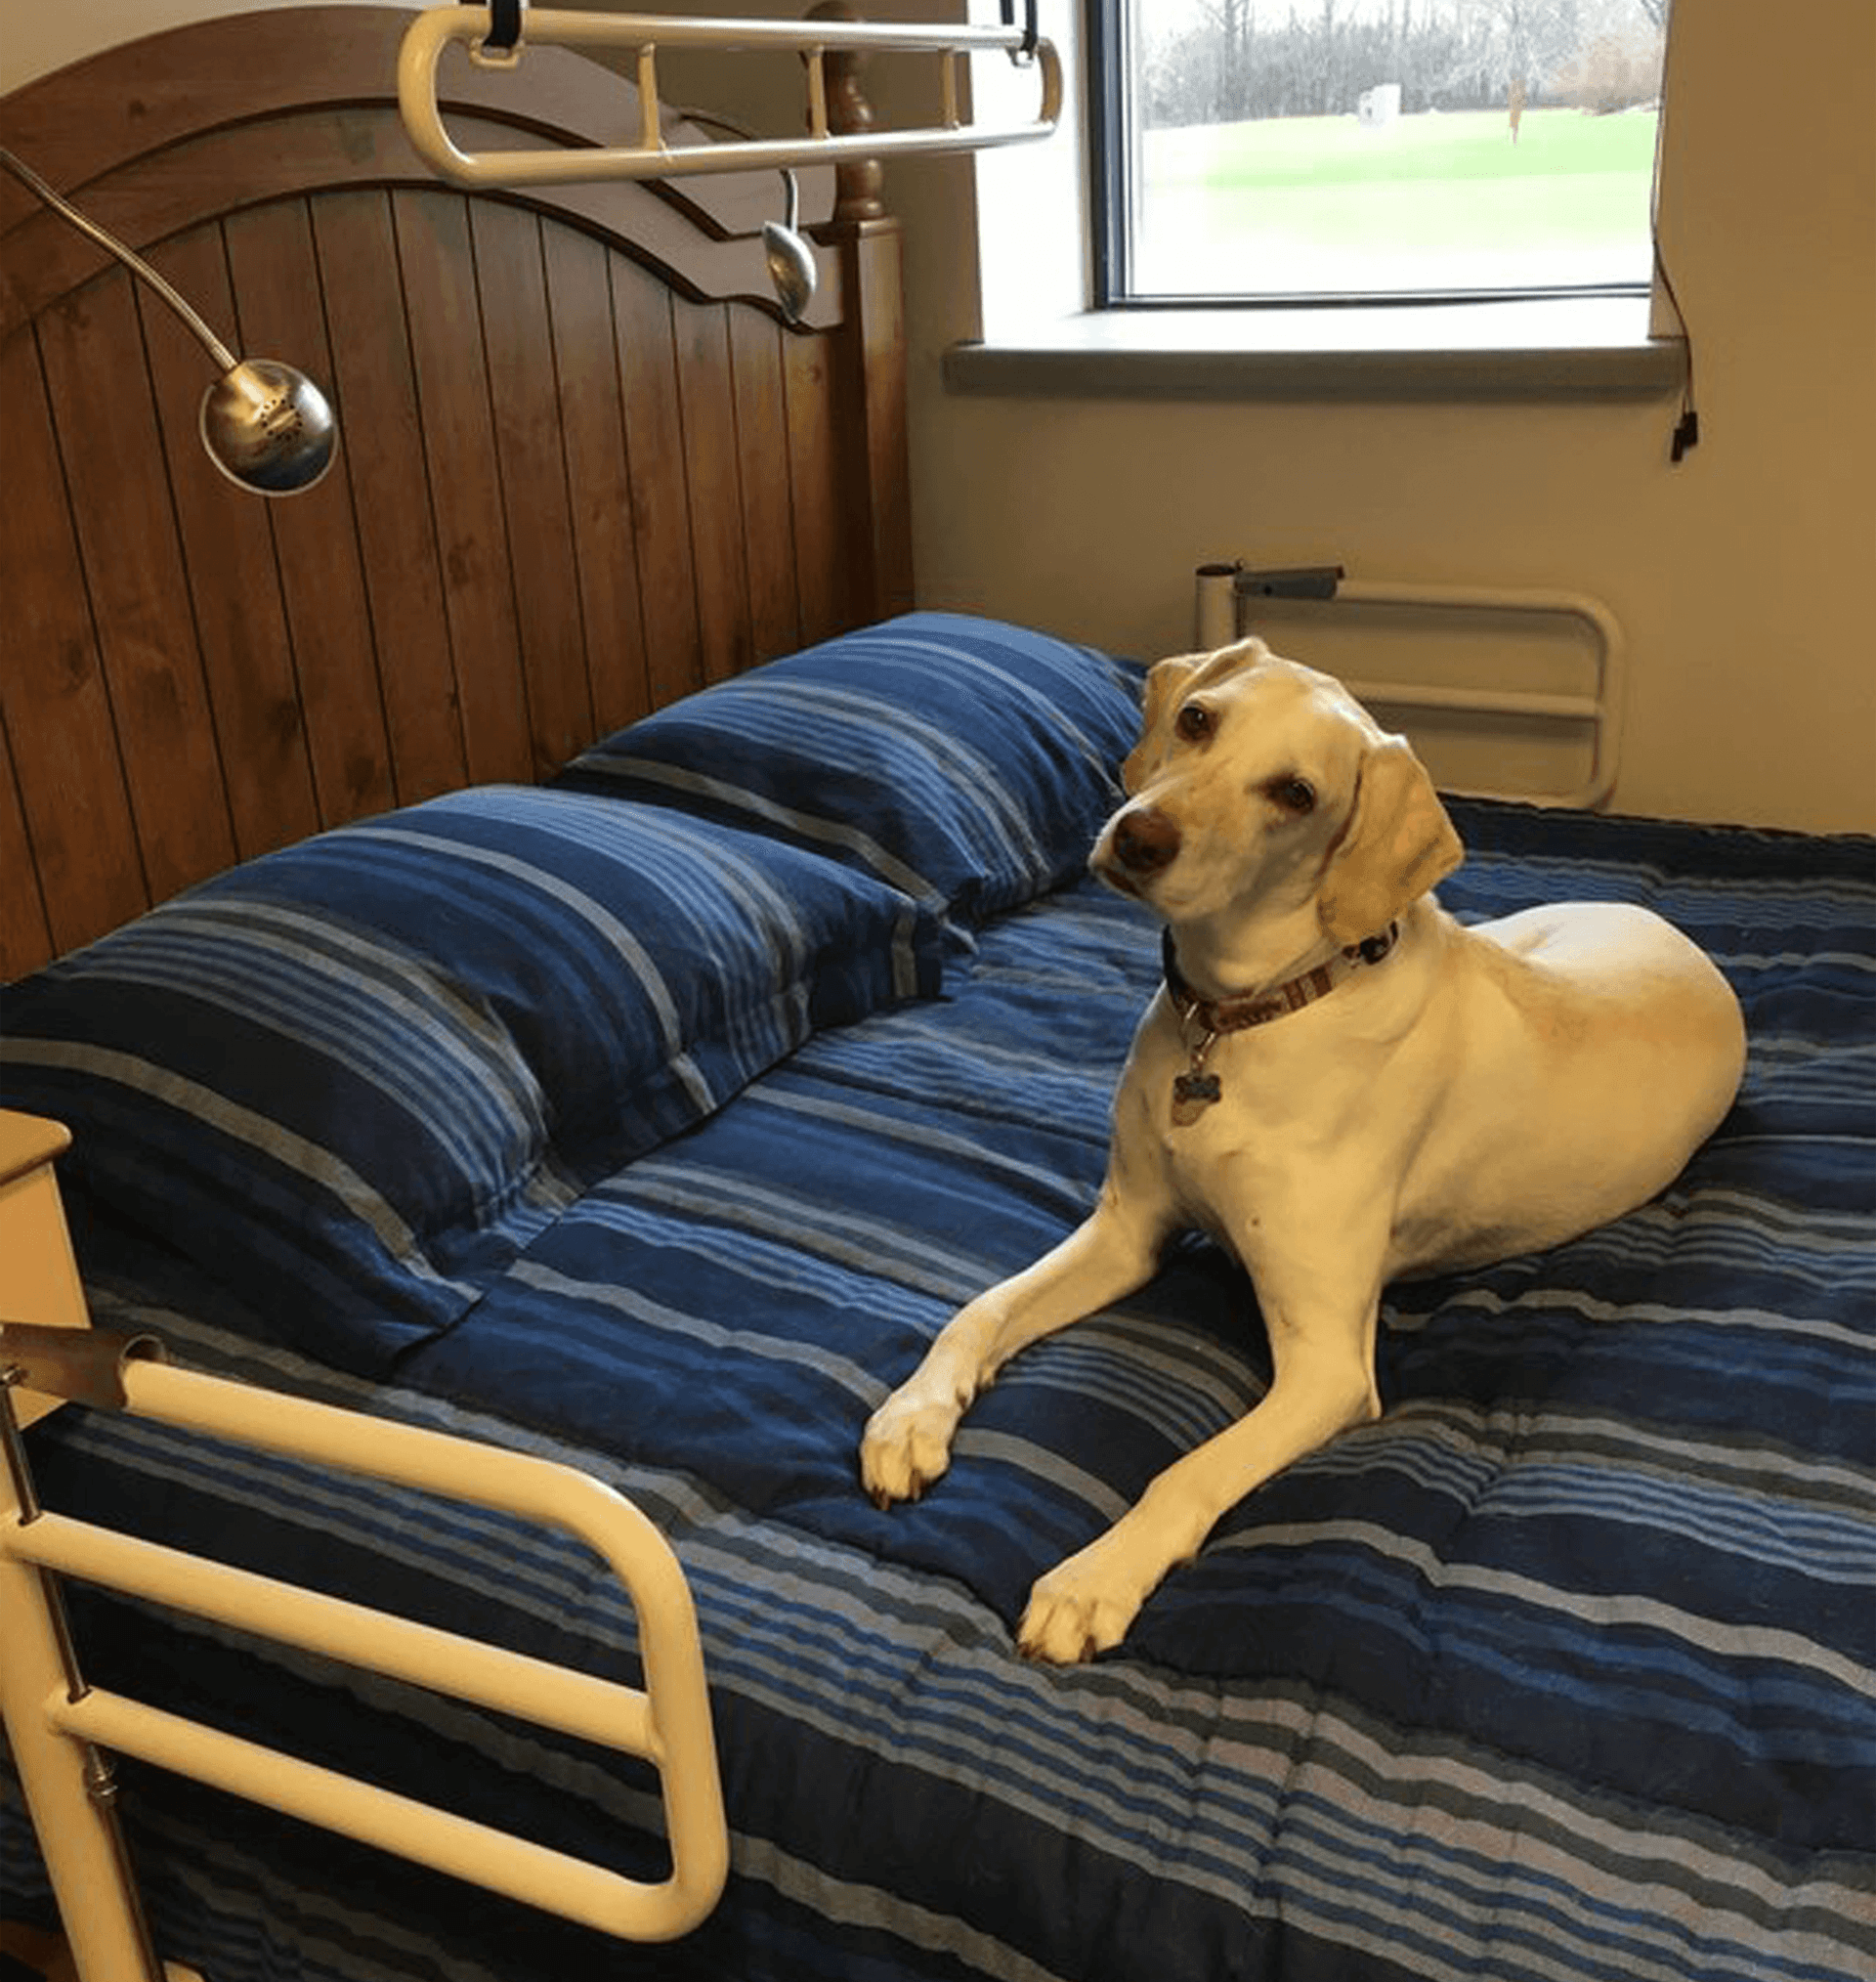 Bed Mobility Dog, Bed Transfer Made Easy